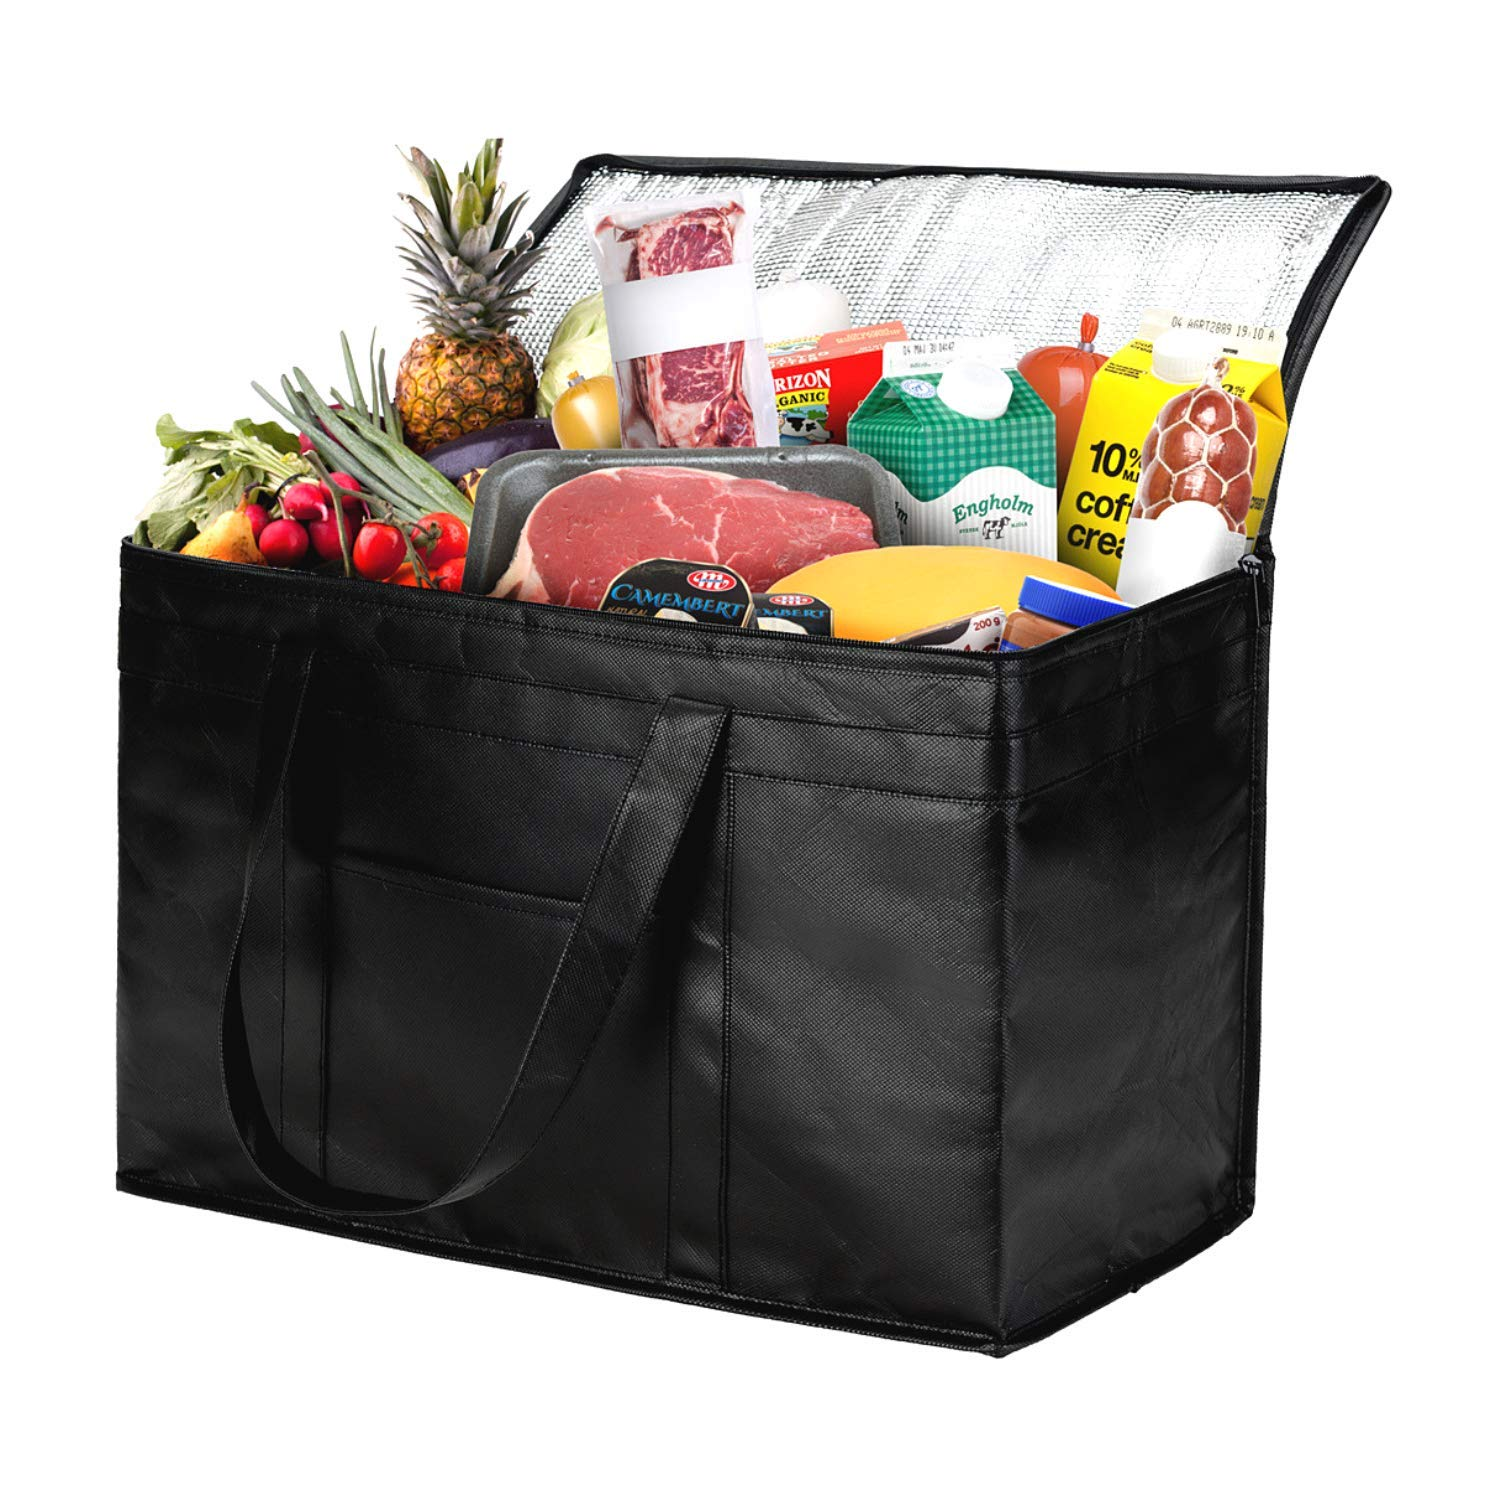 NZ Home 2XL Insulated Grocery Bag, Sturdy Zipper, Collapsible, Heavy Duty, Stands Upright, Jumbo Size Tote, Ideal for Large Grocery Shopping, Food Delivery, Catering Bag (XXL Premium Black, 1)